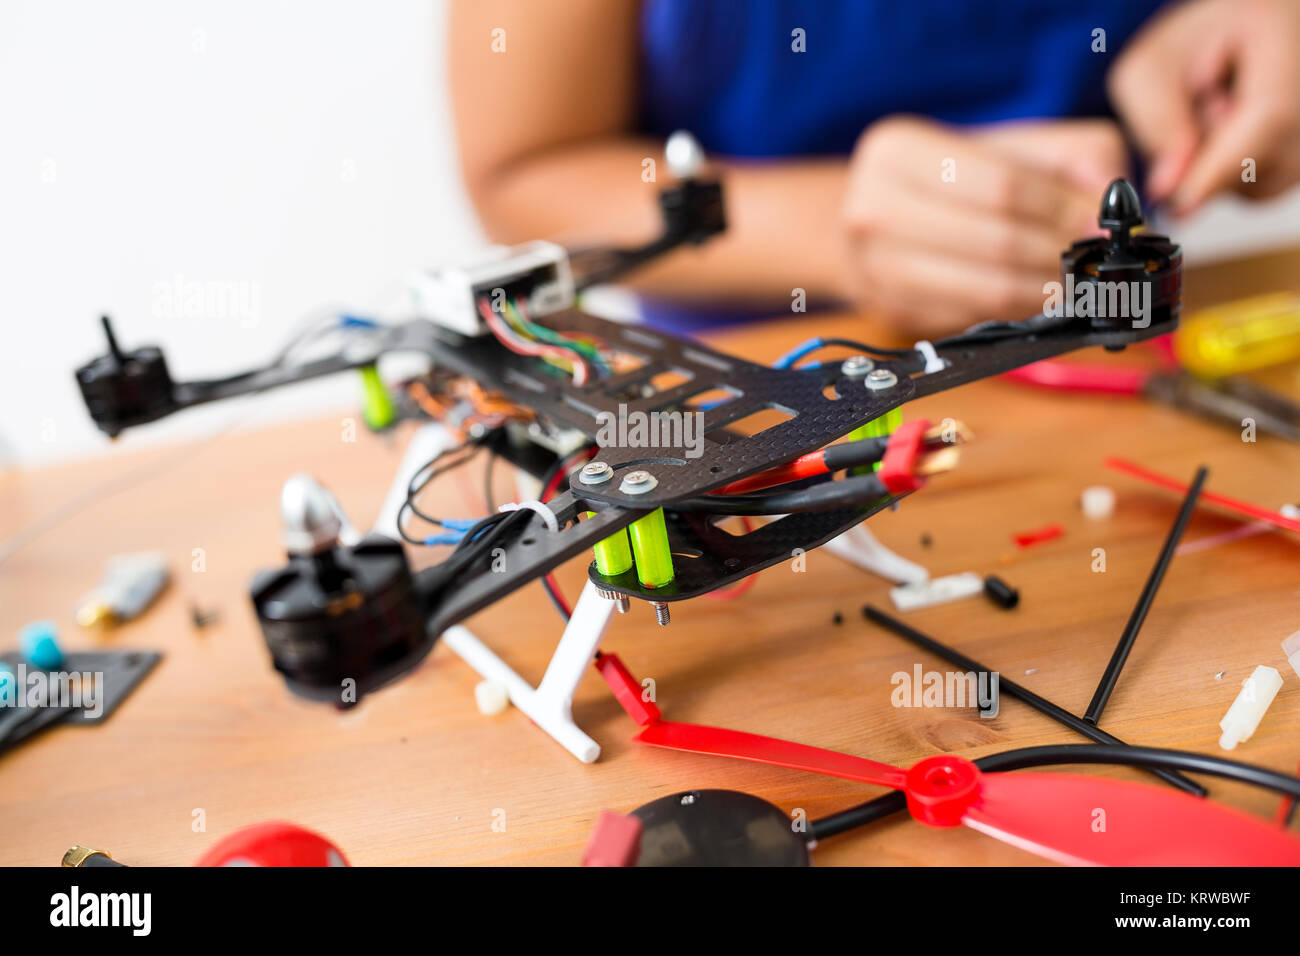 Connecting the electronic parts on drone - Stock Image